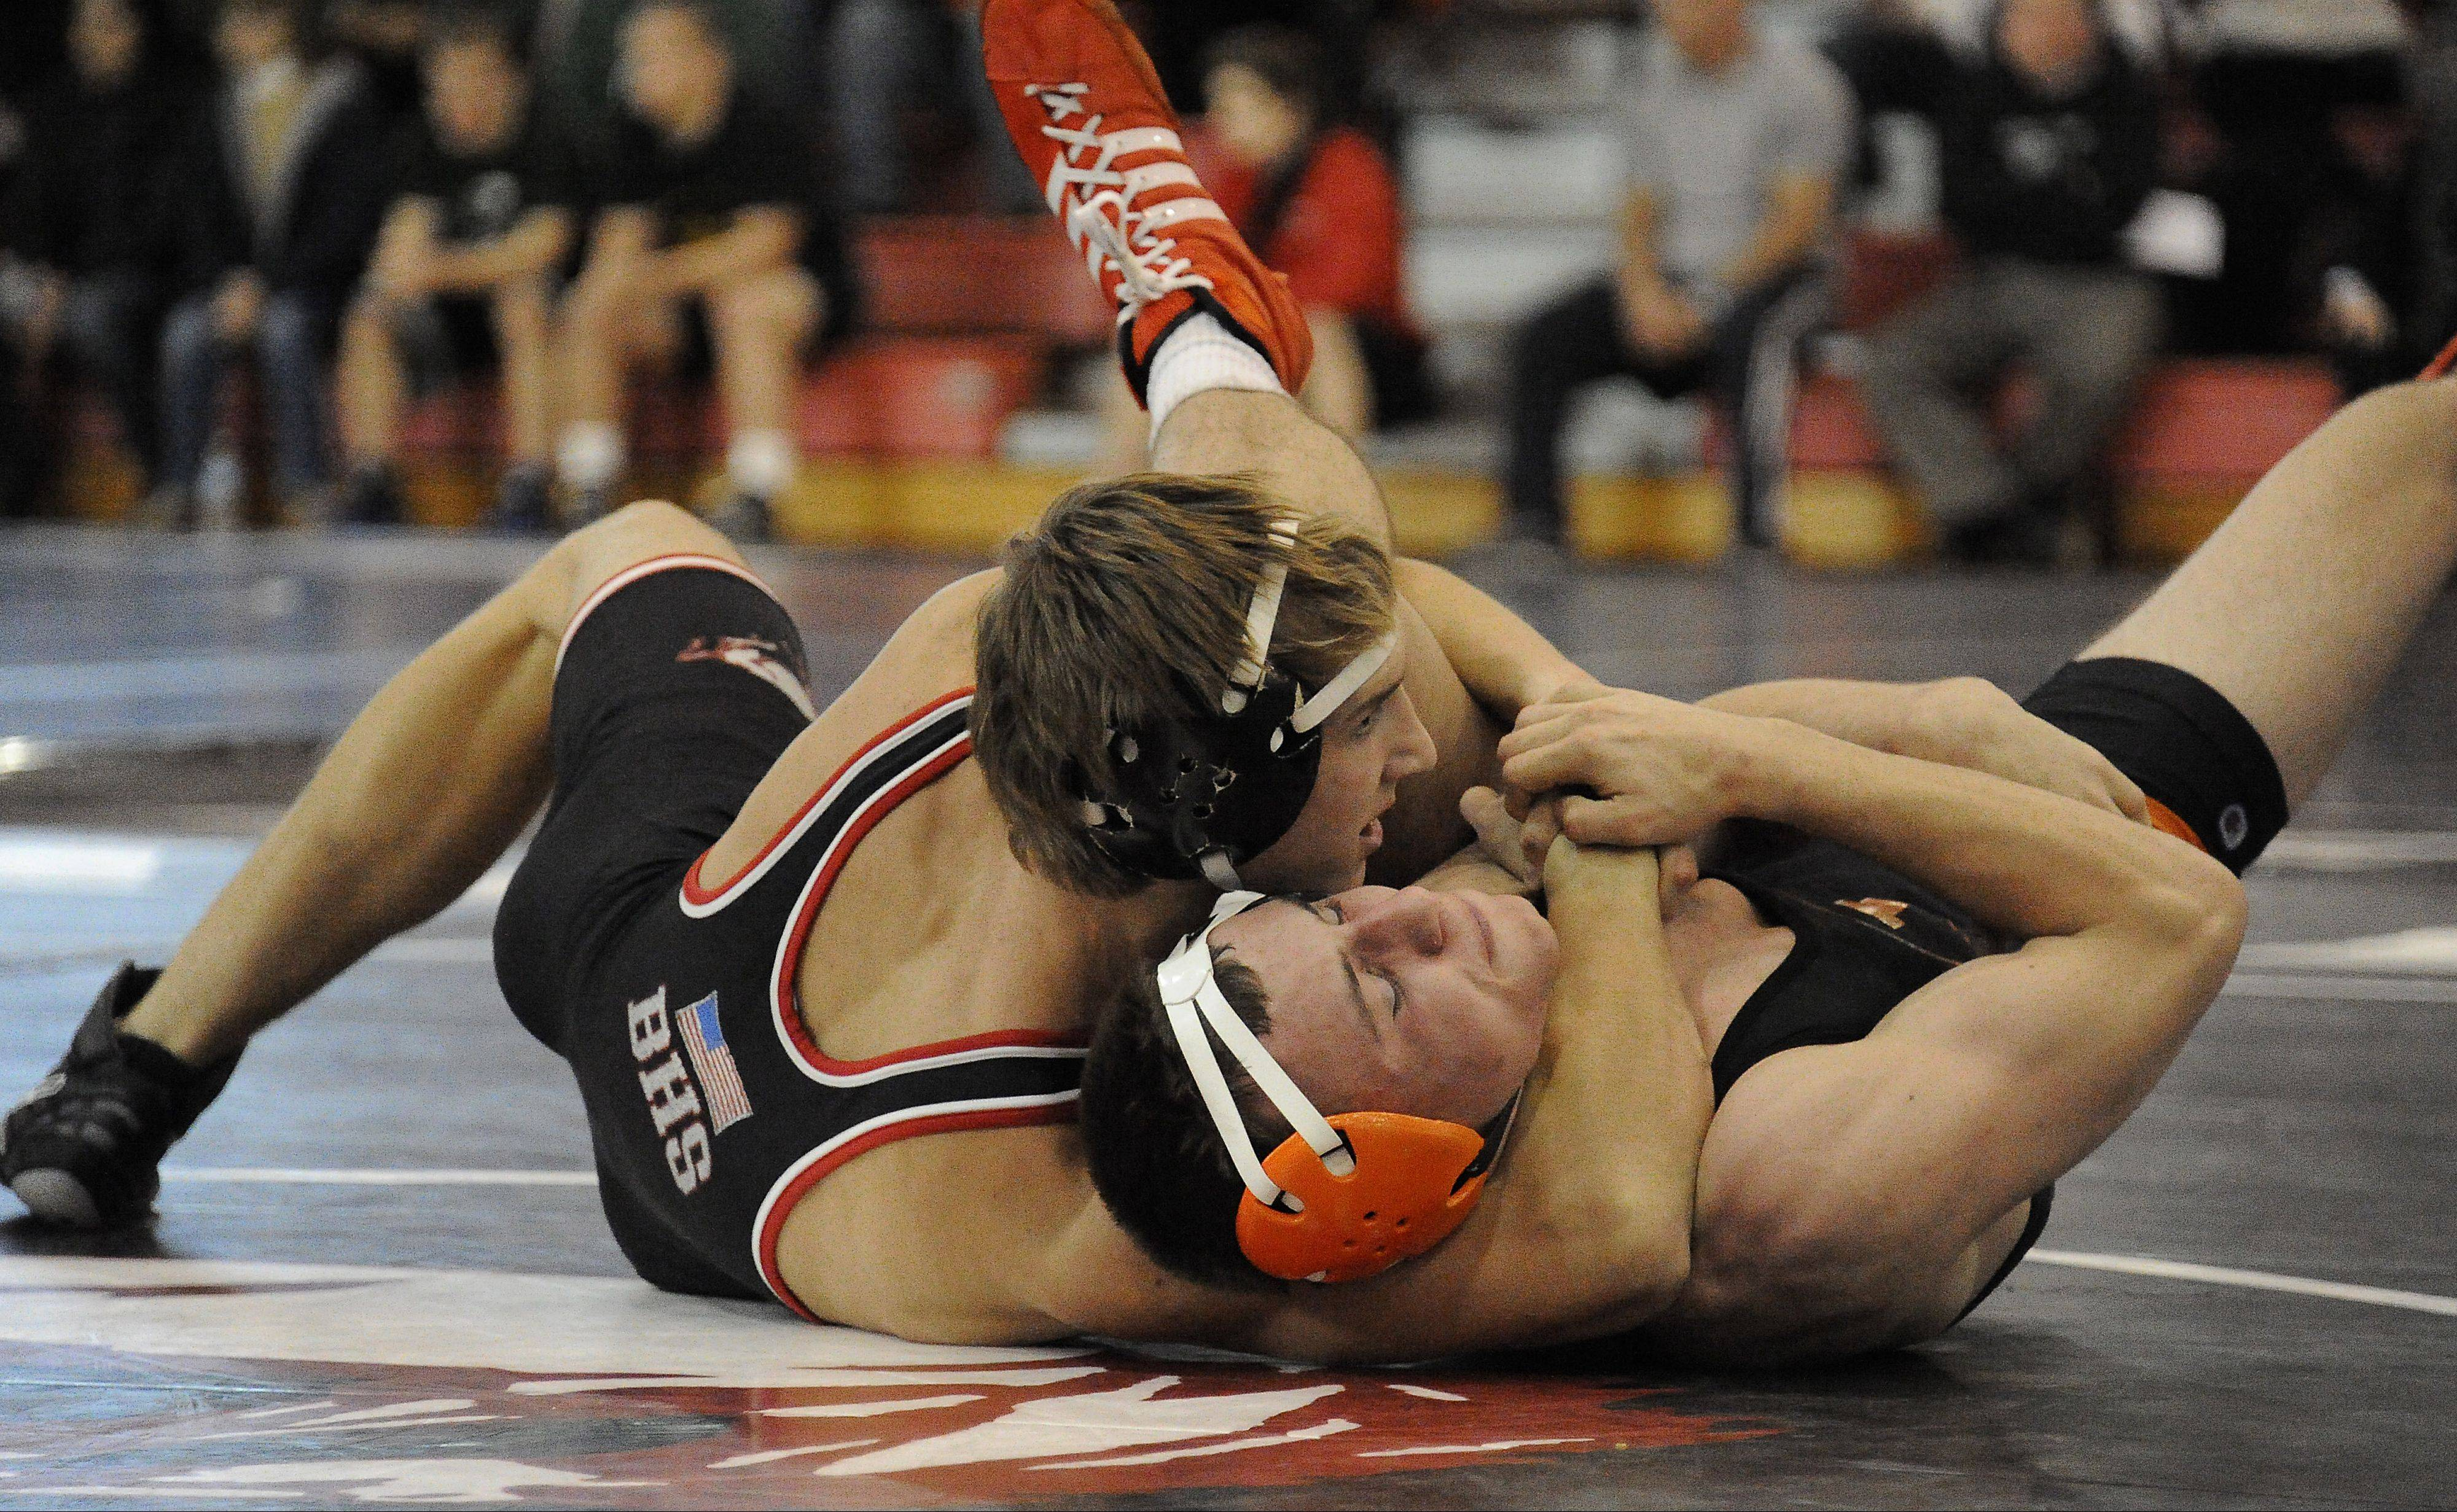 Coord Wiseman of Barrington gets the pin against Joey Gunther of Libertyville at 145 pounds during the 22nd Annual Moore/Prettyman Wrestling Invitational at Barrington High School on Saturday.